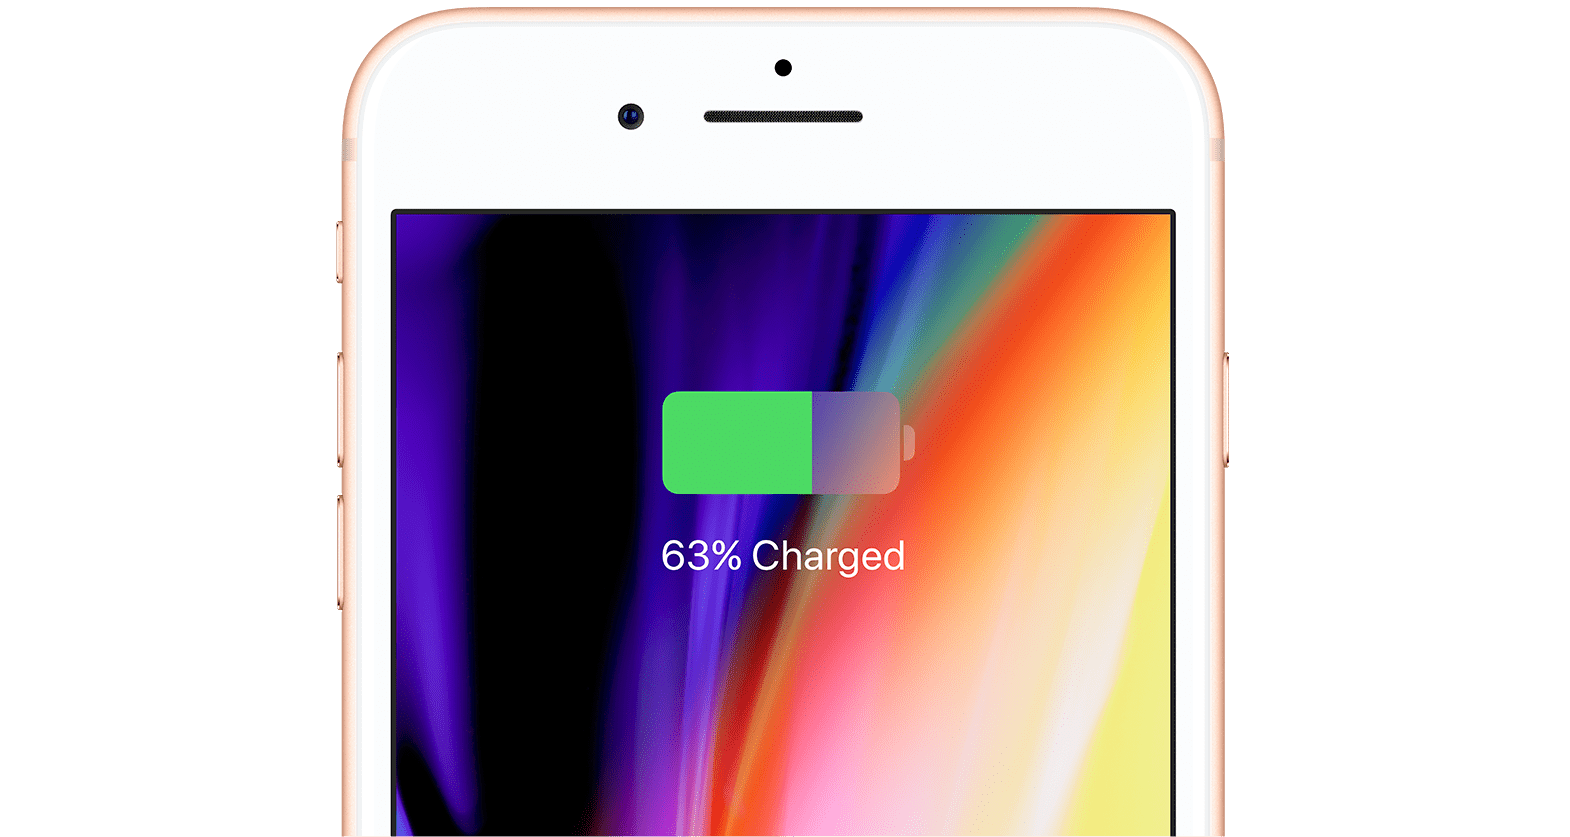 iPhone 8 charging screen